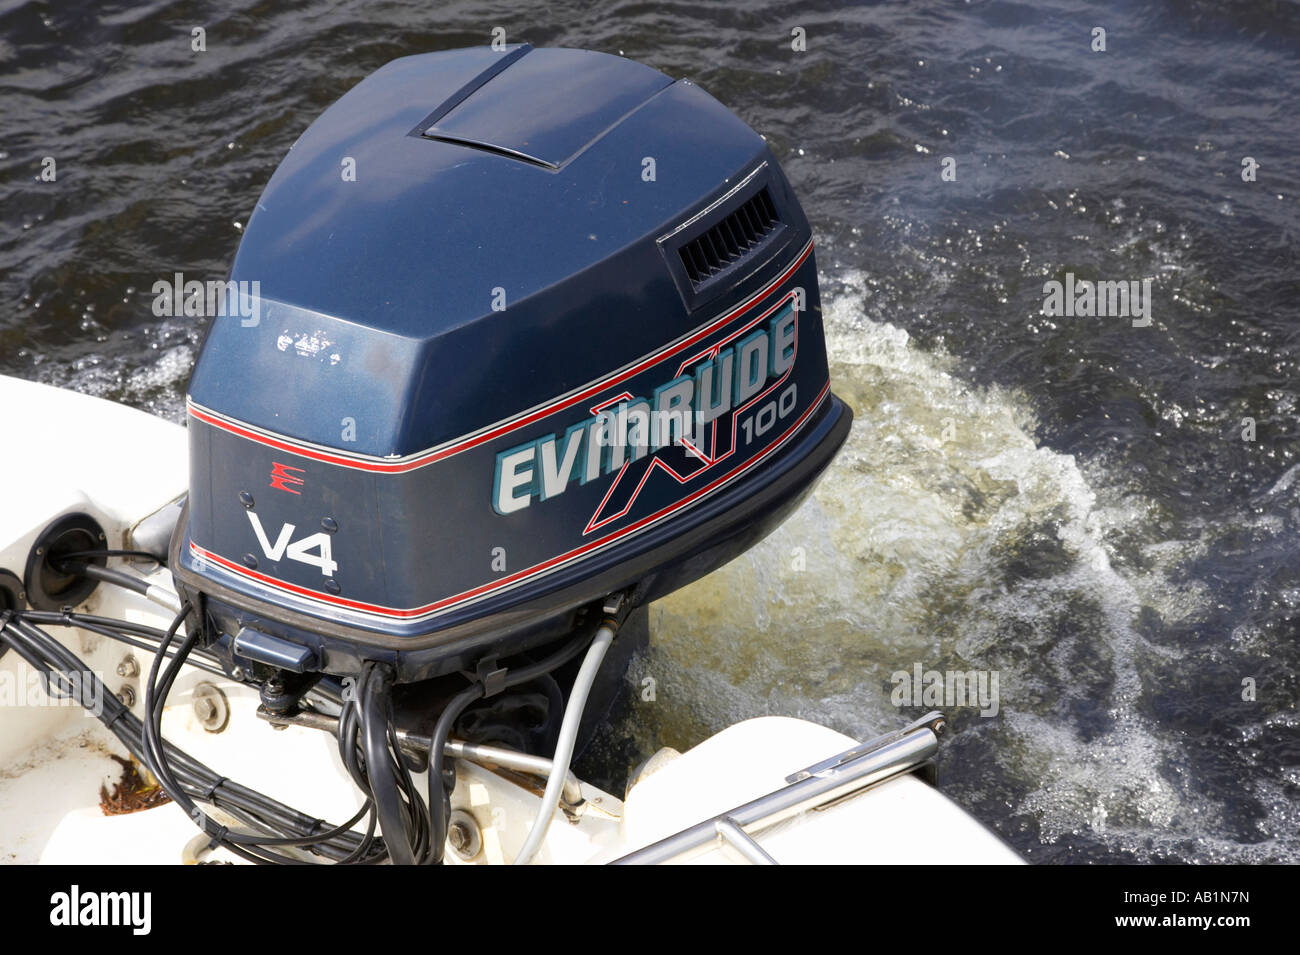 Dating evinrude outboards